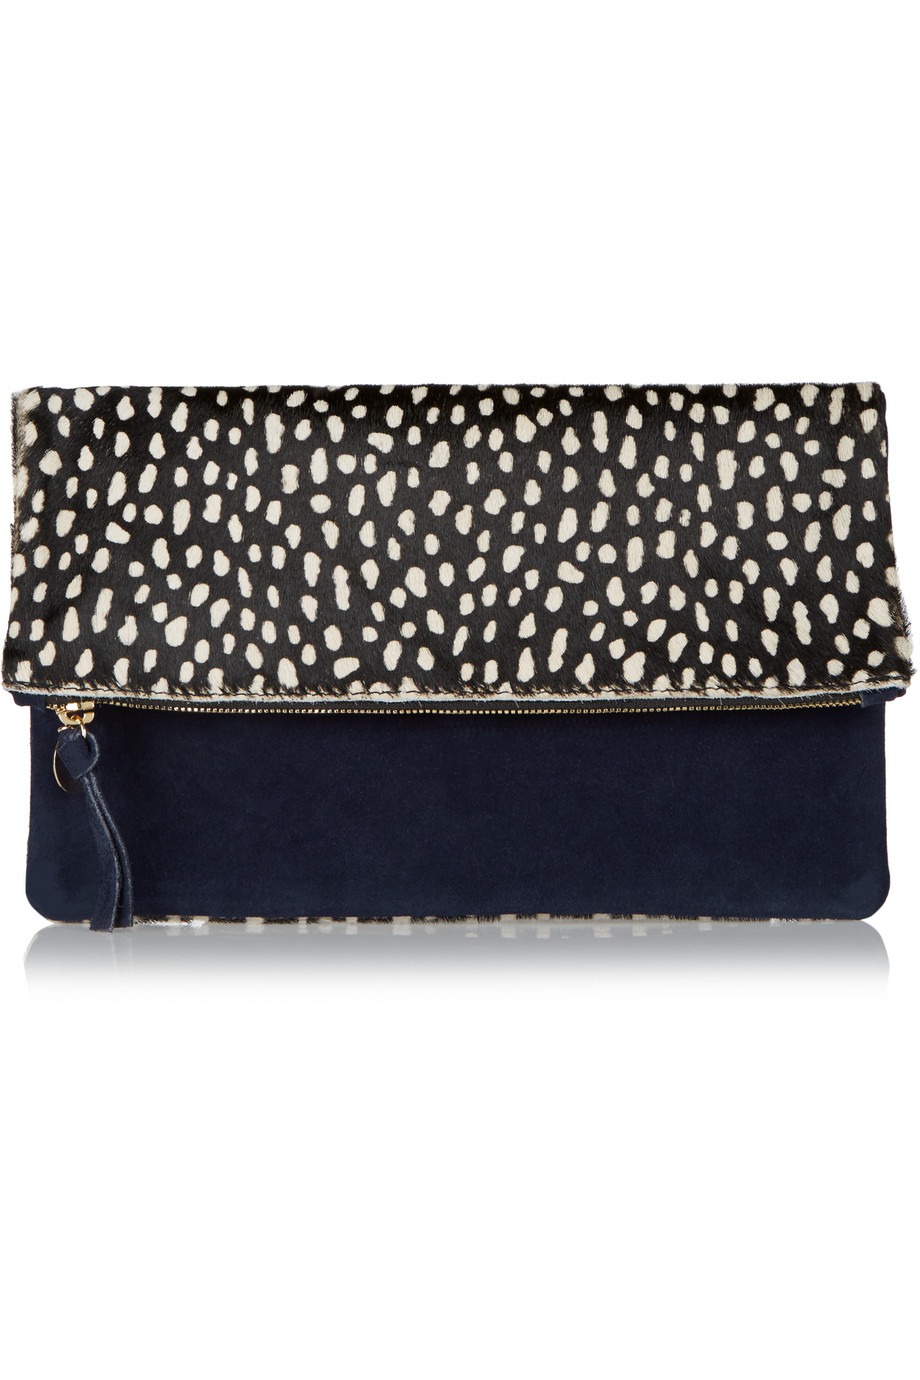 Clare V Supreme Fold-Over Printed Calf Hair and Suede Clutch, Black/Dark Purple, Women's, Size: One Size